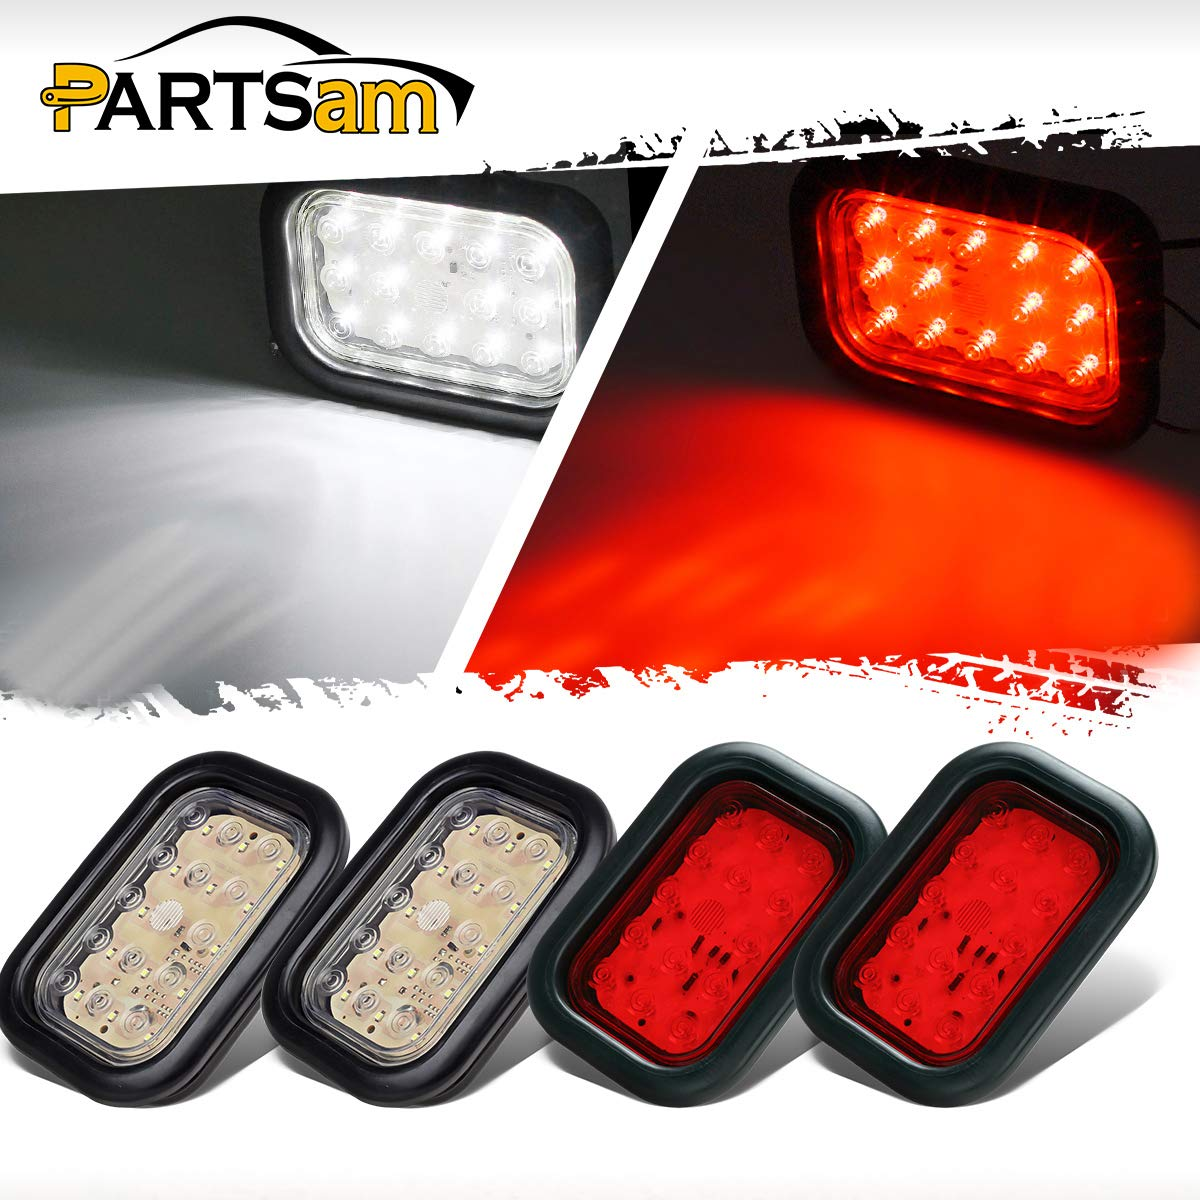 Partsam 4pcs 5 X3 Rectangle Led Tail Lights Stop Turn Brake Backup Reverse Light Truck Trailer Hitch Light Utility 14 Led Flush Mount Sealed Grommet